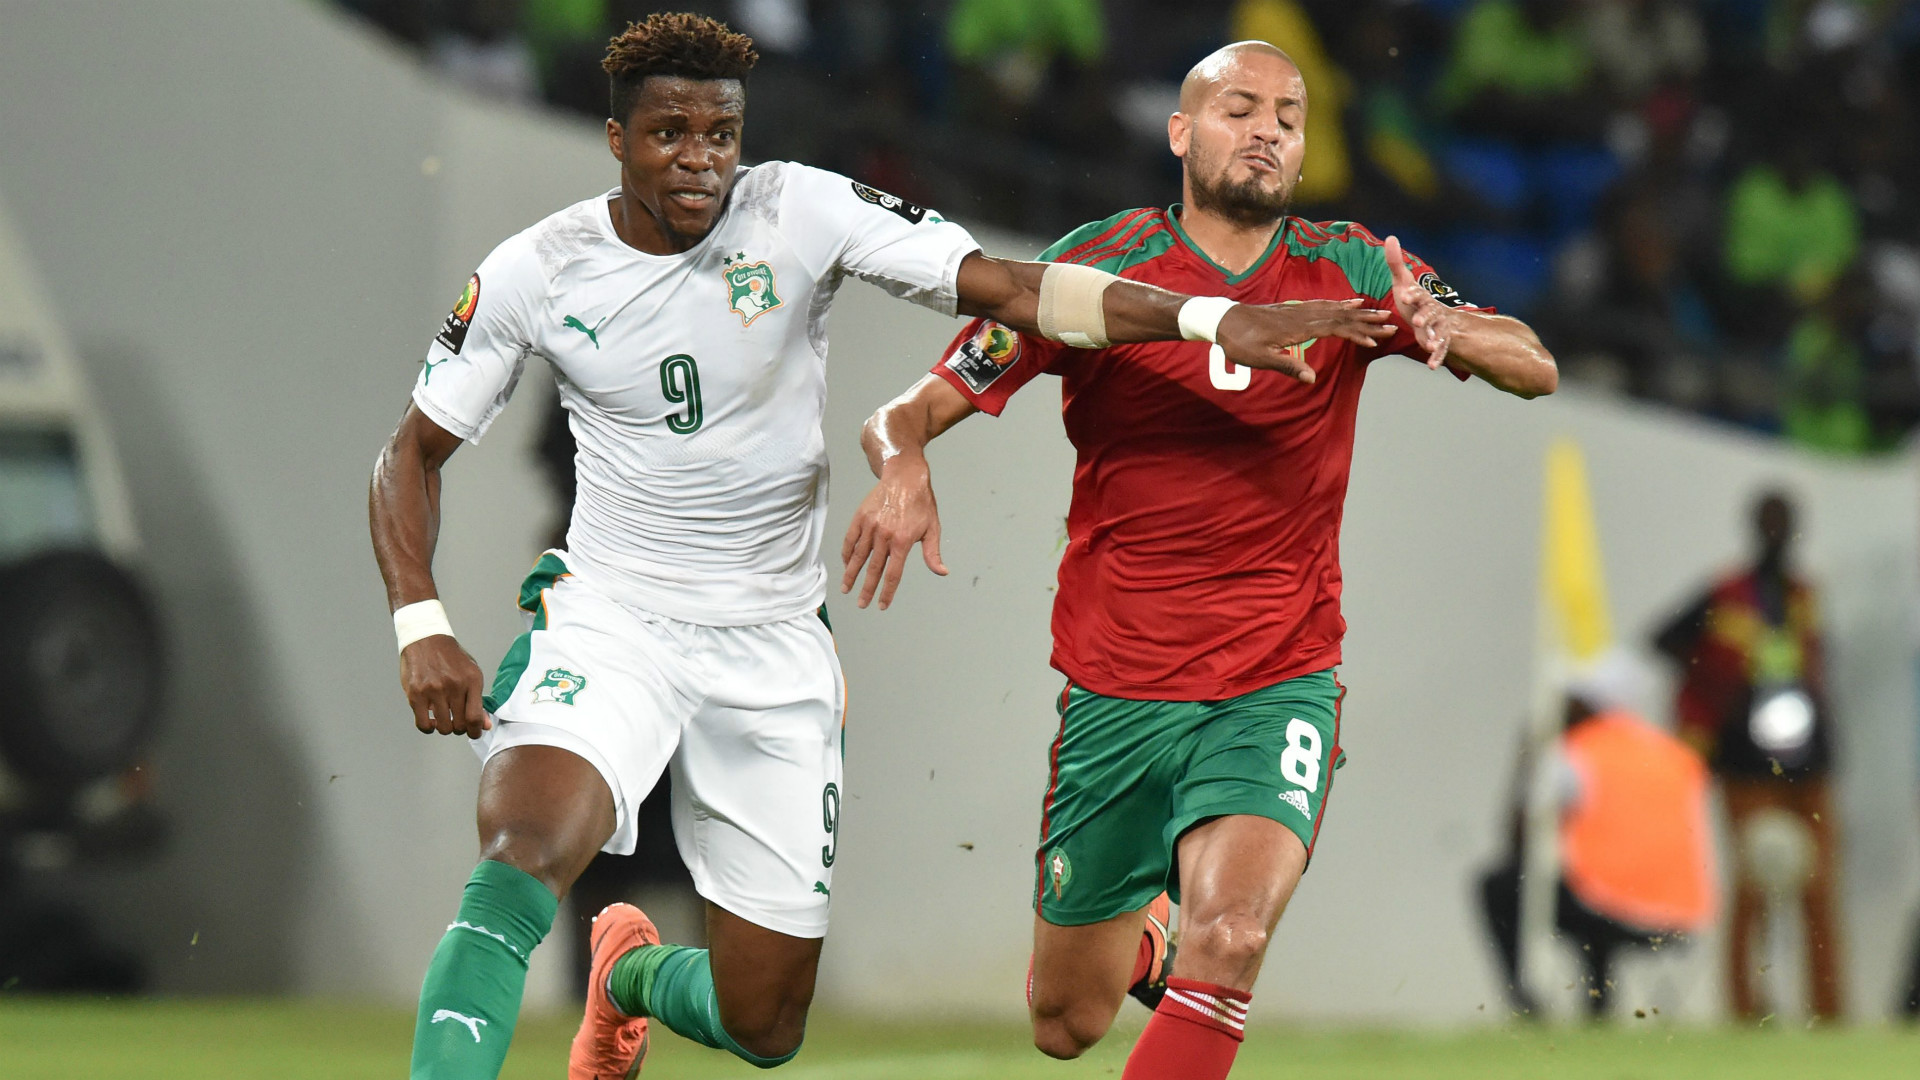 EXTRA TIME: Crystal Palace's Zaha gets hero's welcome in Cote d'Ivoire